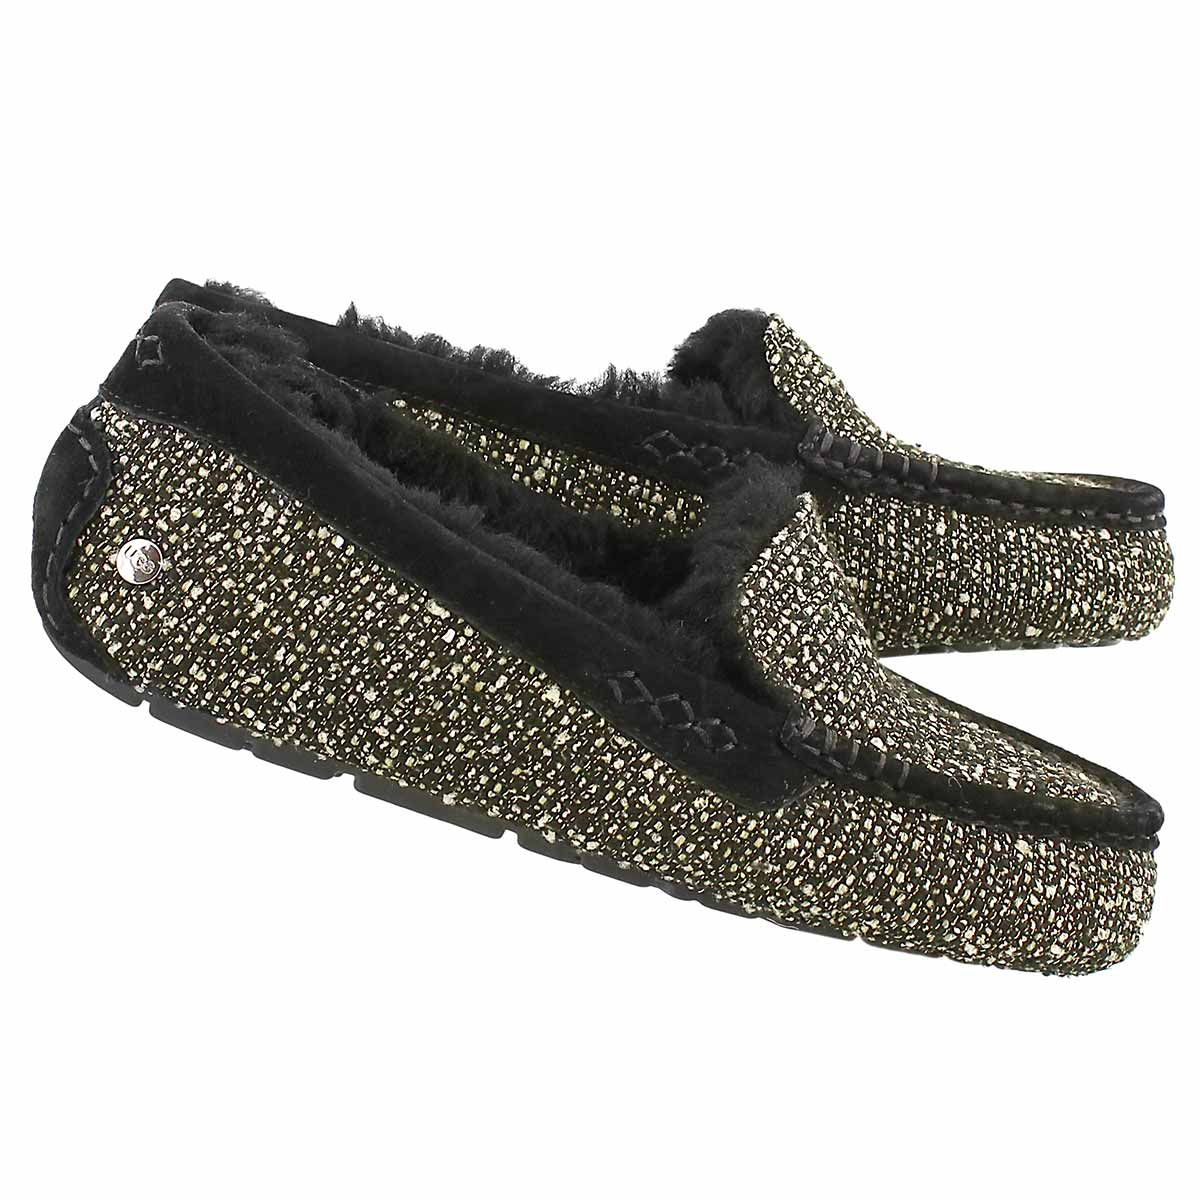 Lds Ansley Fancy blk sparkle moccasin